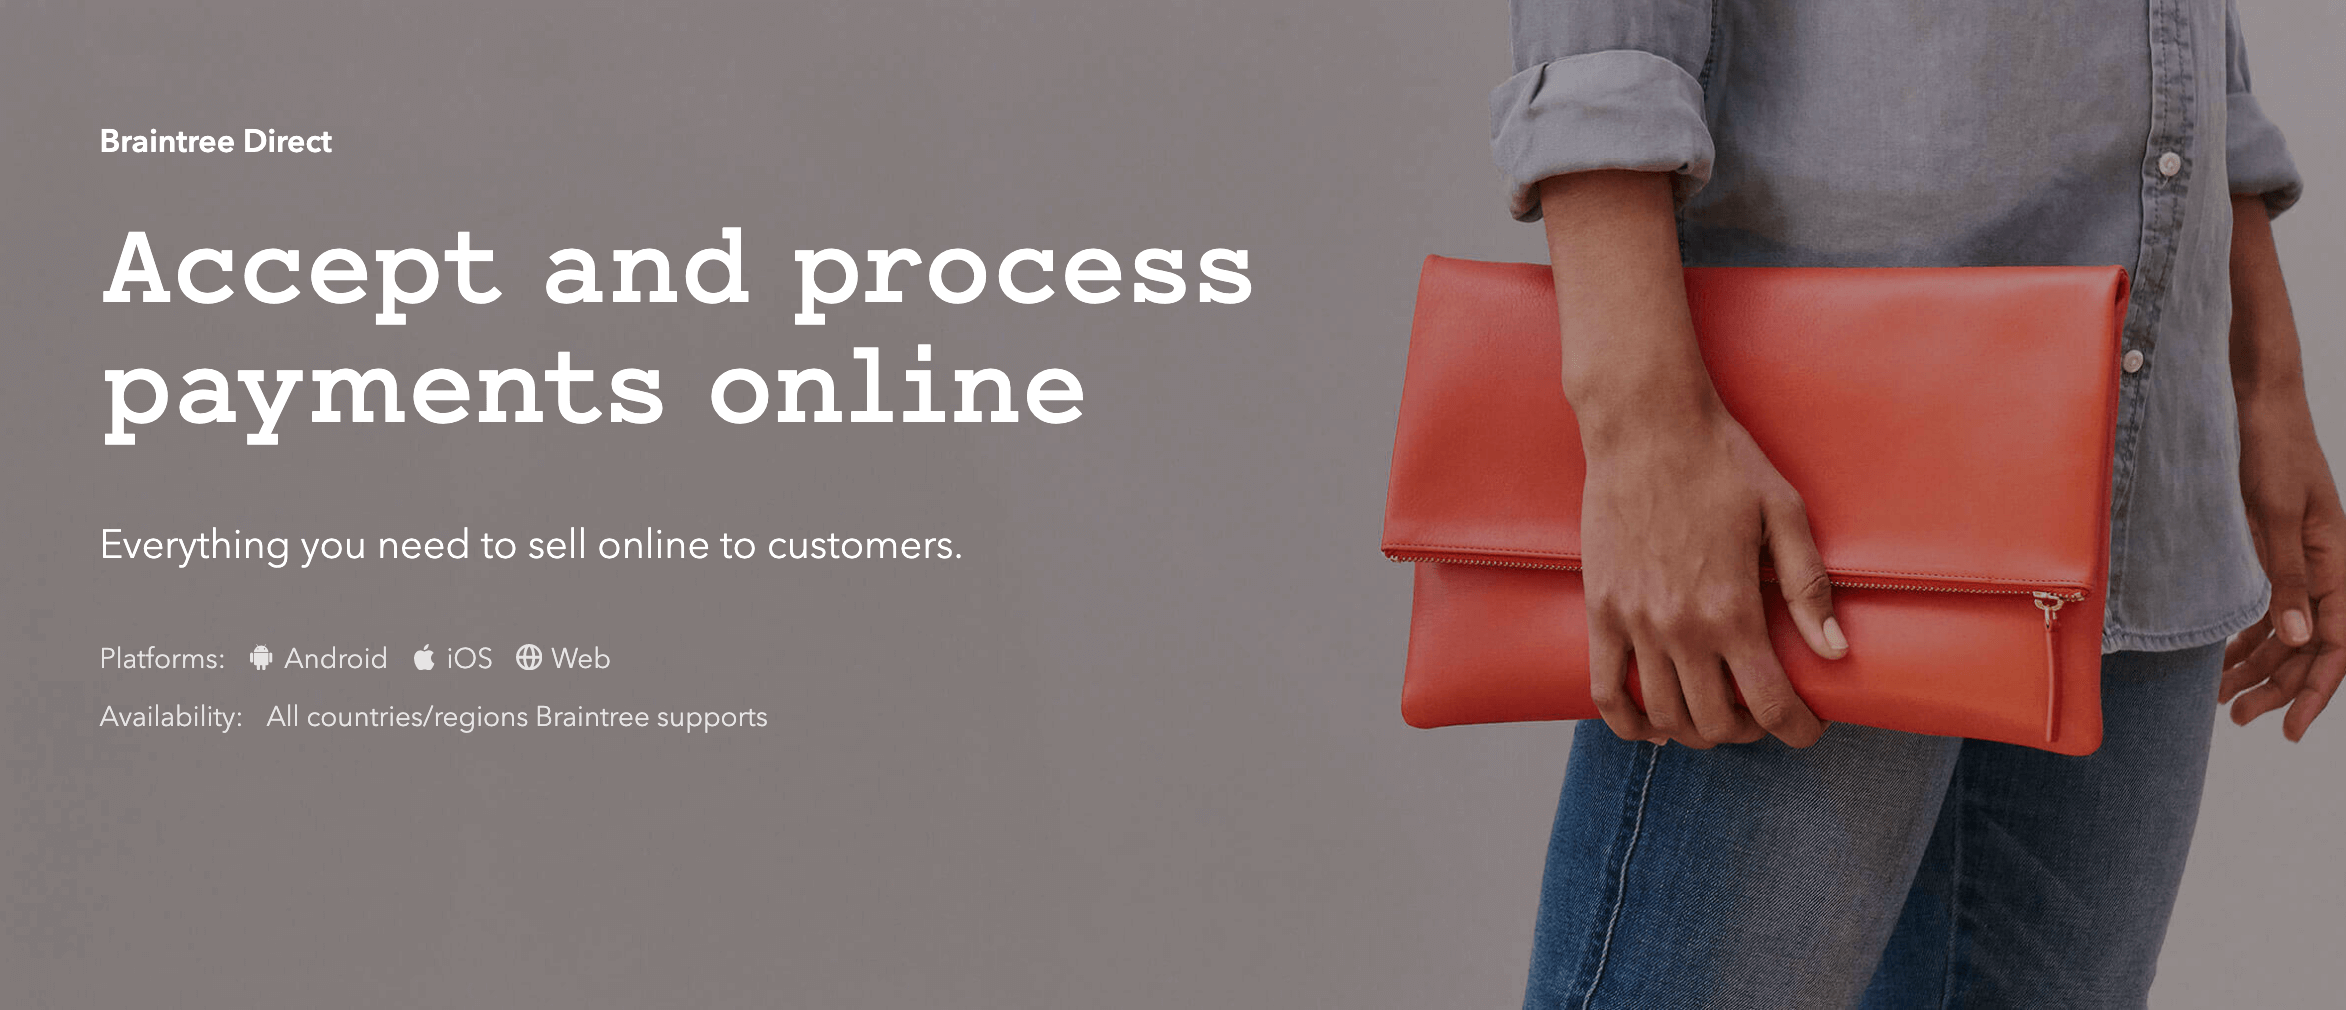 7-best-woocommerce-payment-gateways-and-processors-5 7 Best WooCommerce Payment Gateways and Processors